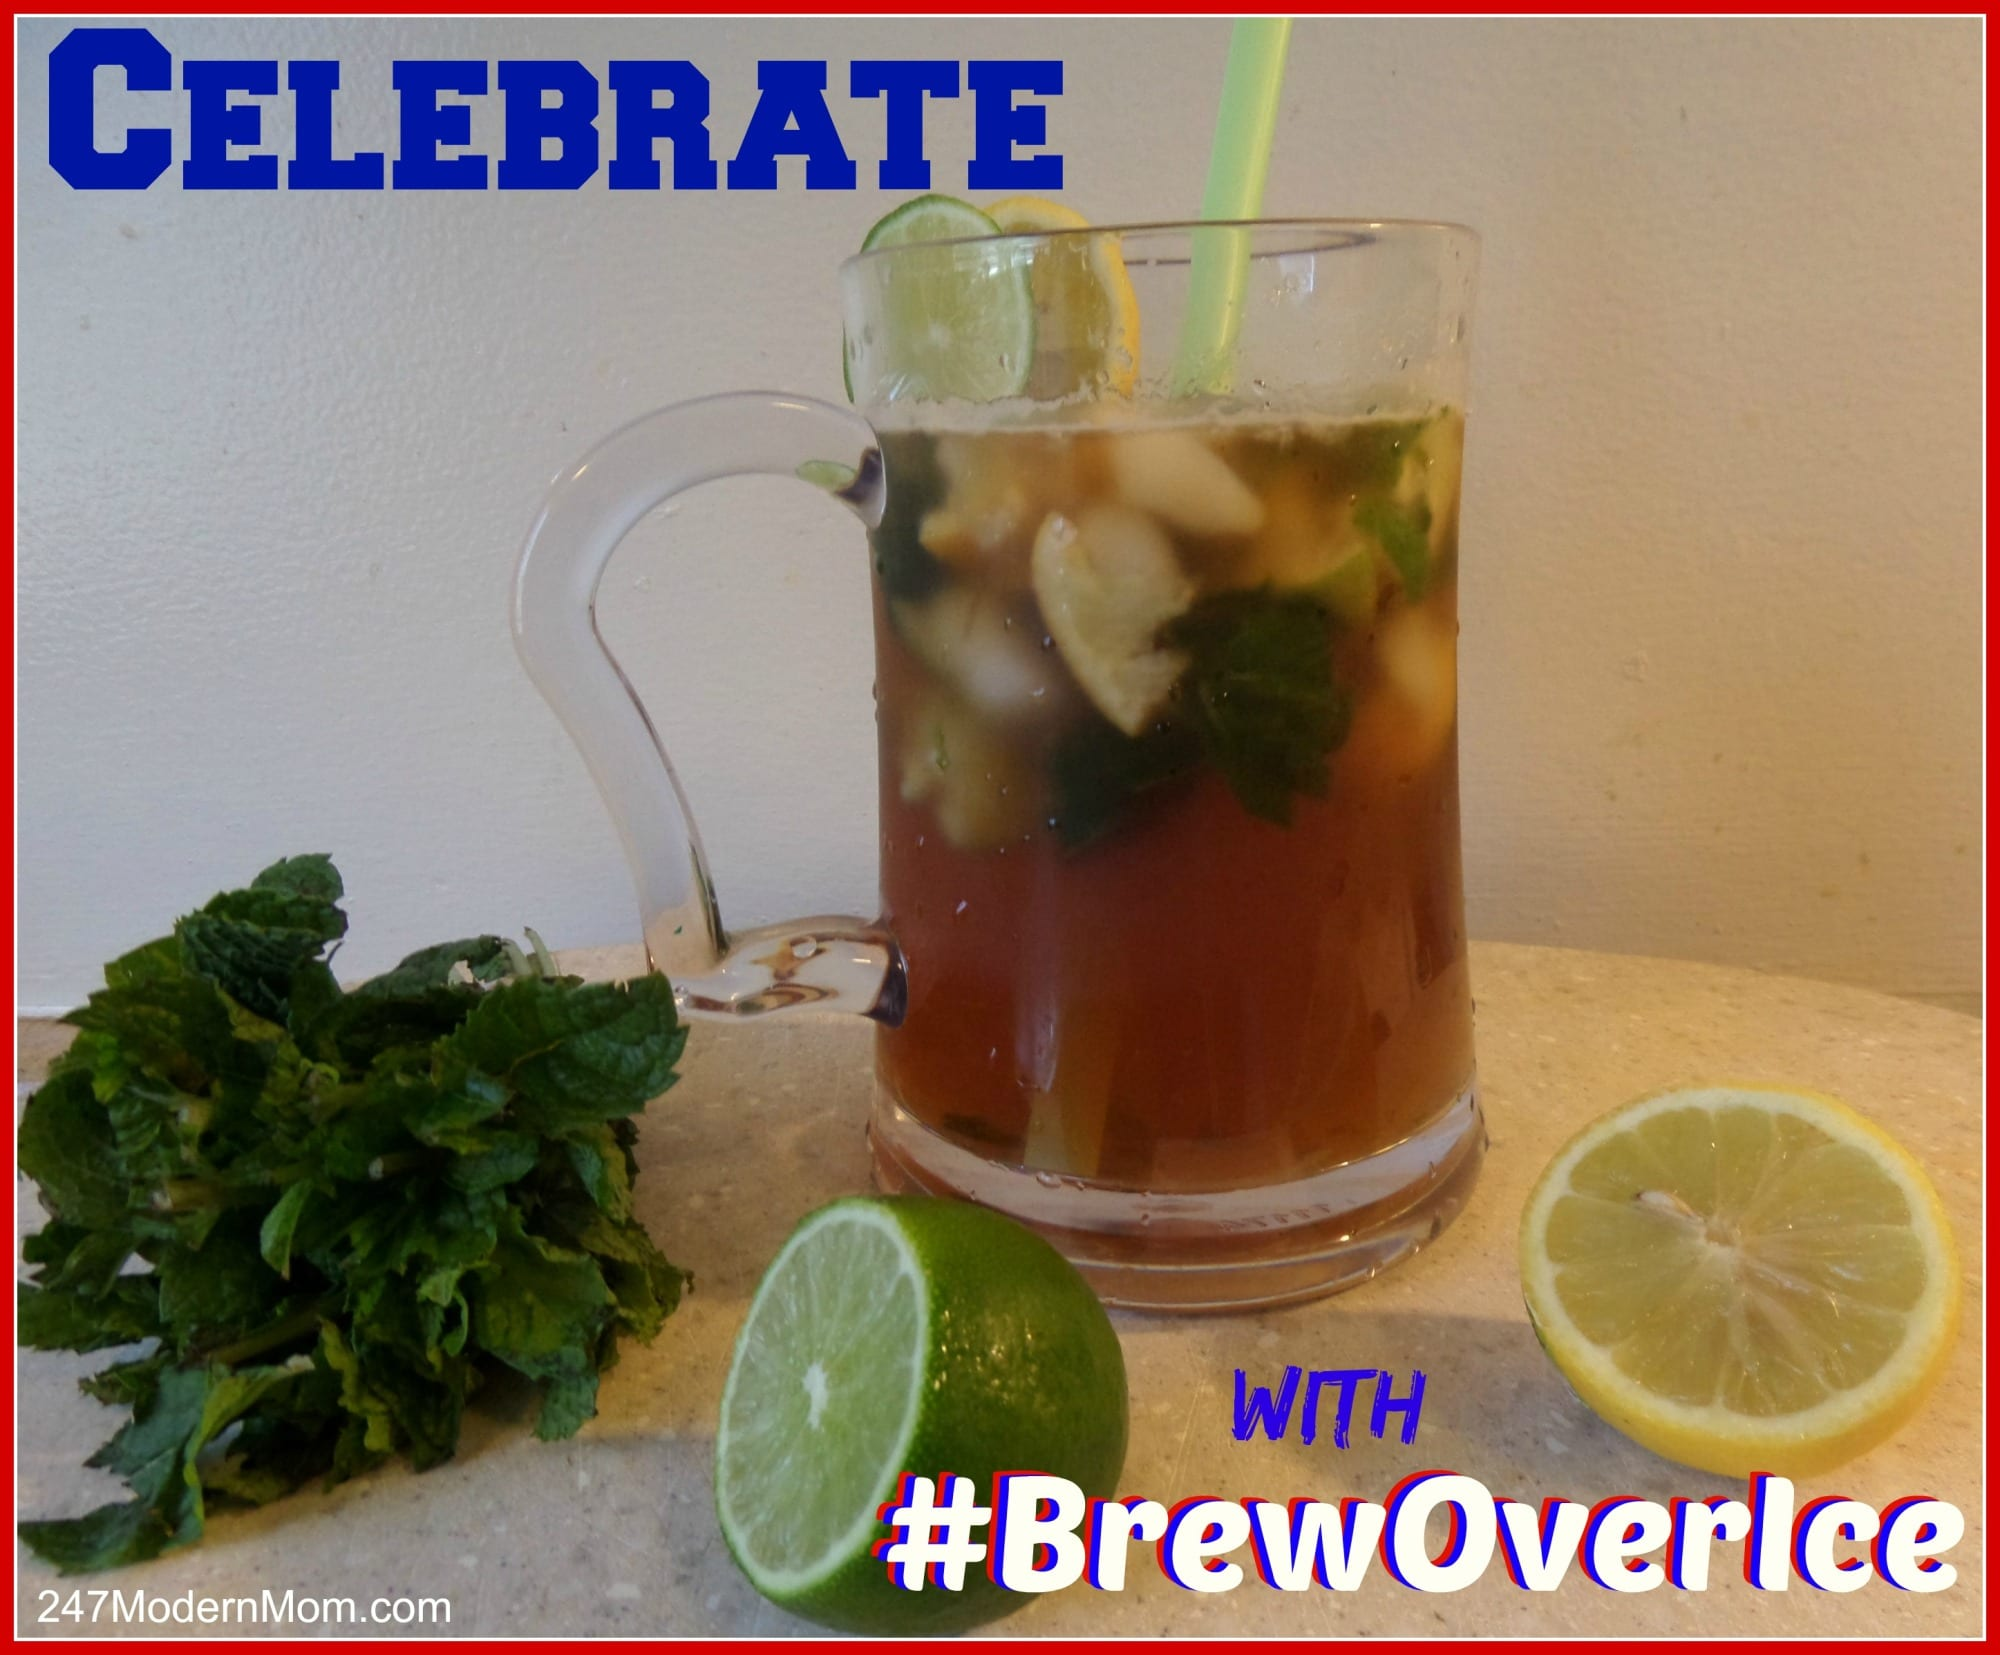 #shop Celebrate with Iced Tea